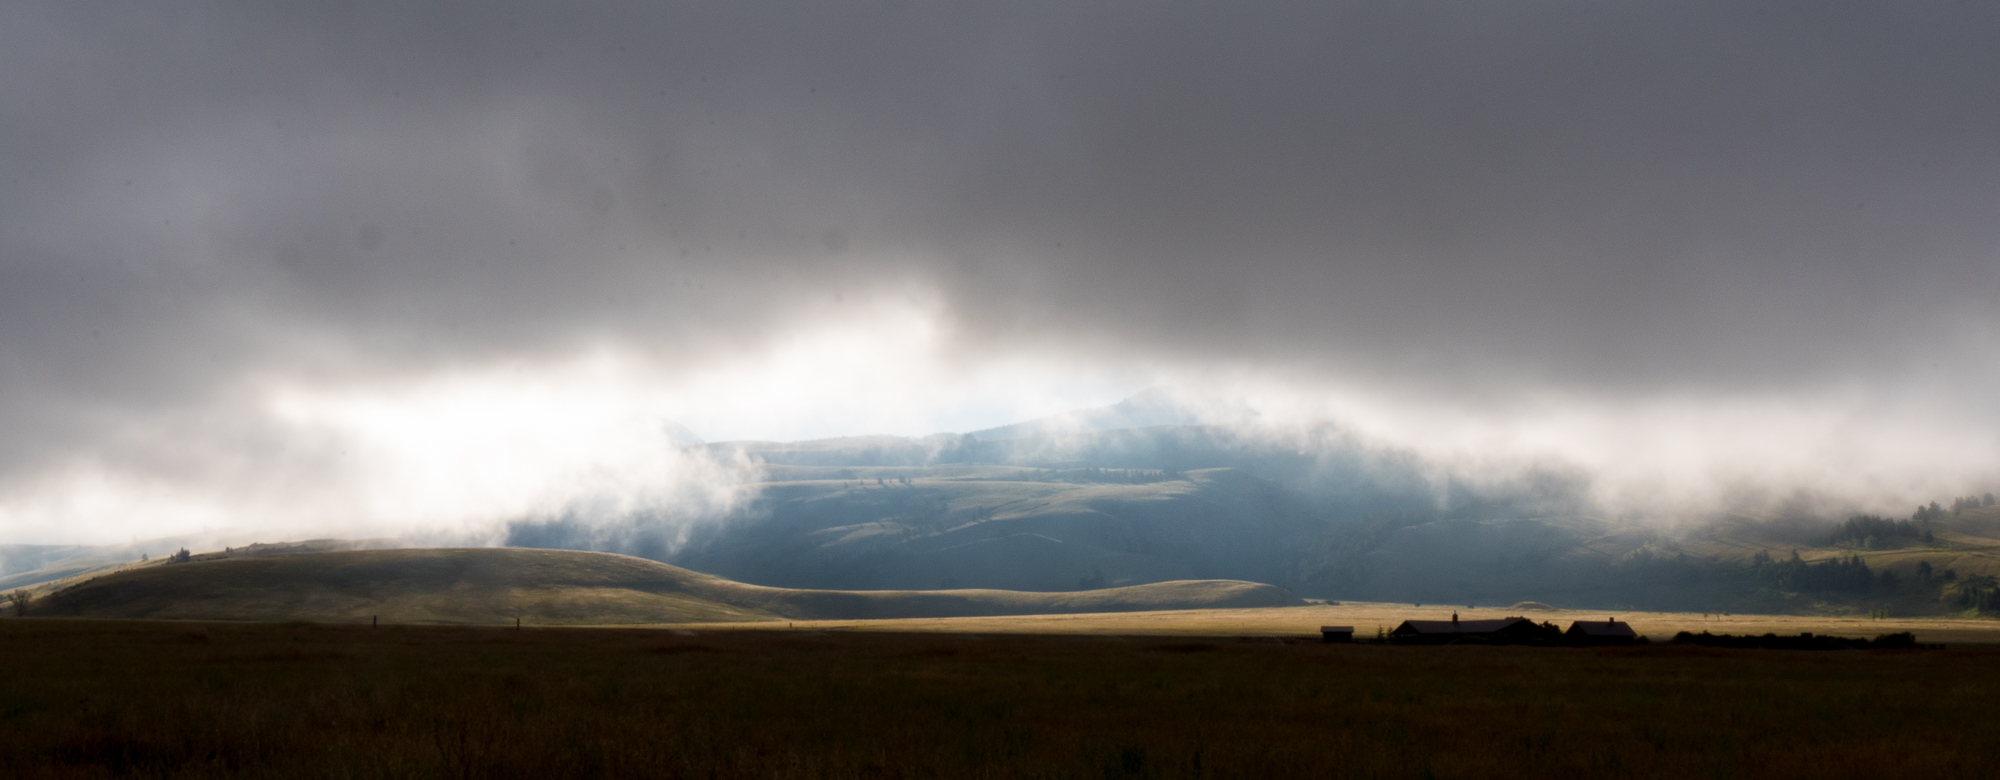 The hills at the edge of Curtis Canyon, viewed through morning fog from Elk Refuge Road